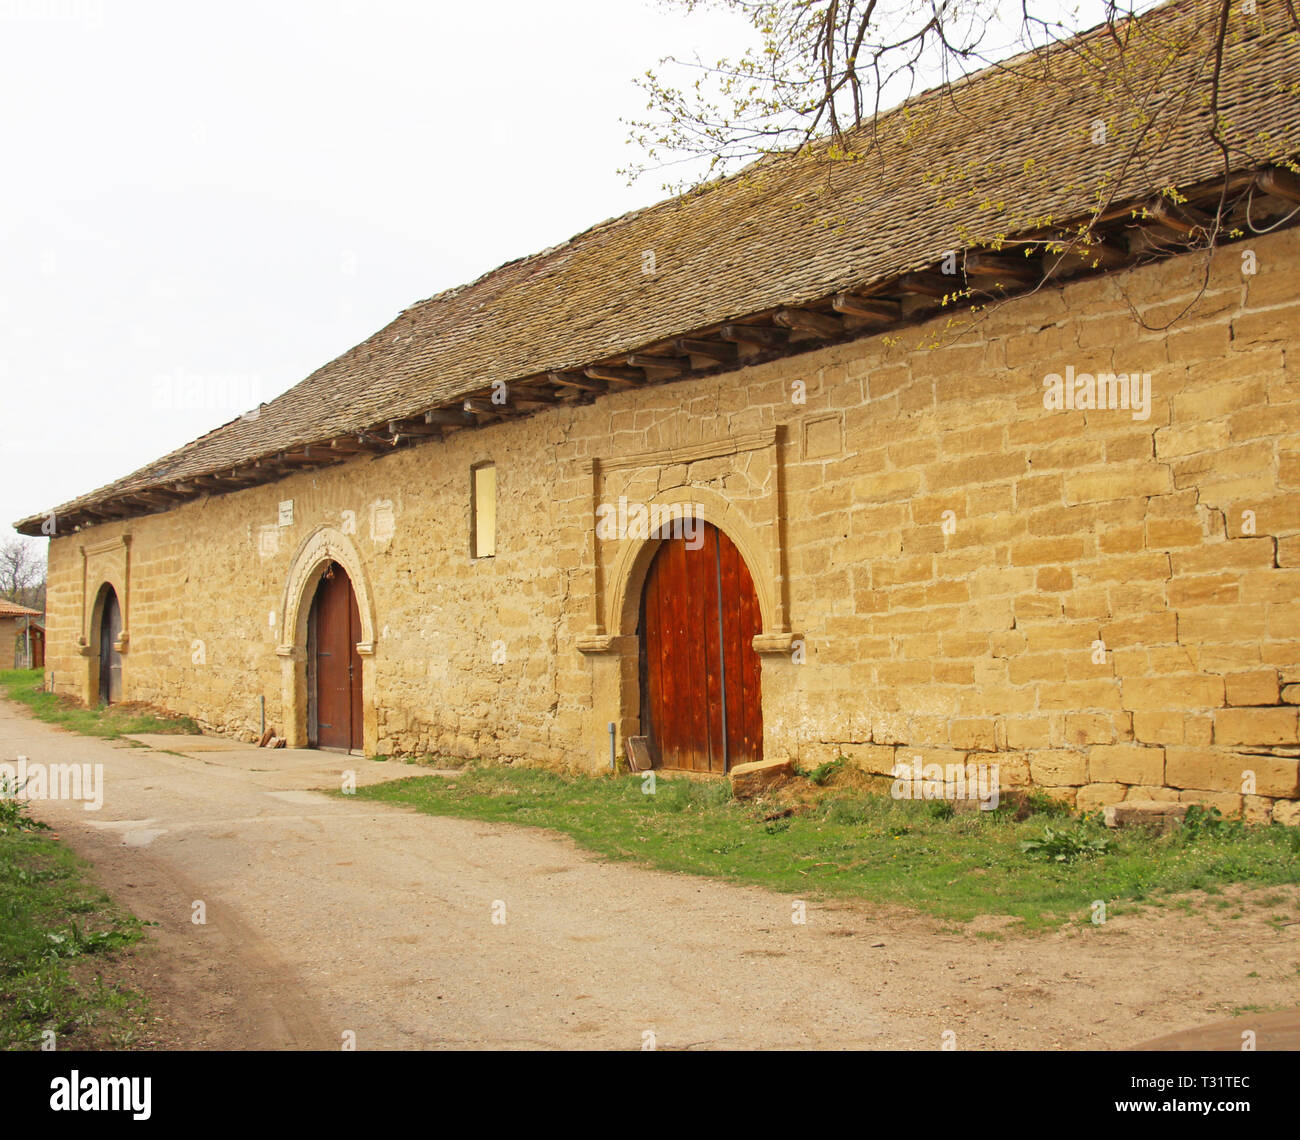 Ancient house made of stone that was used for storing wine - Stock Image